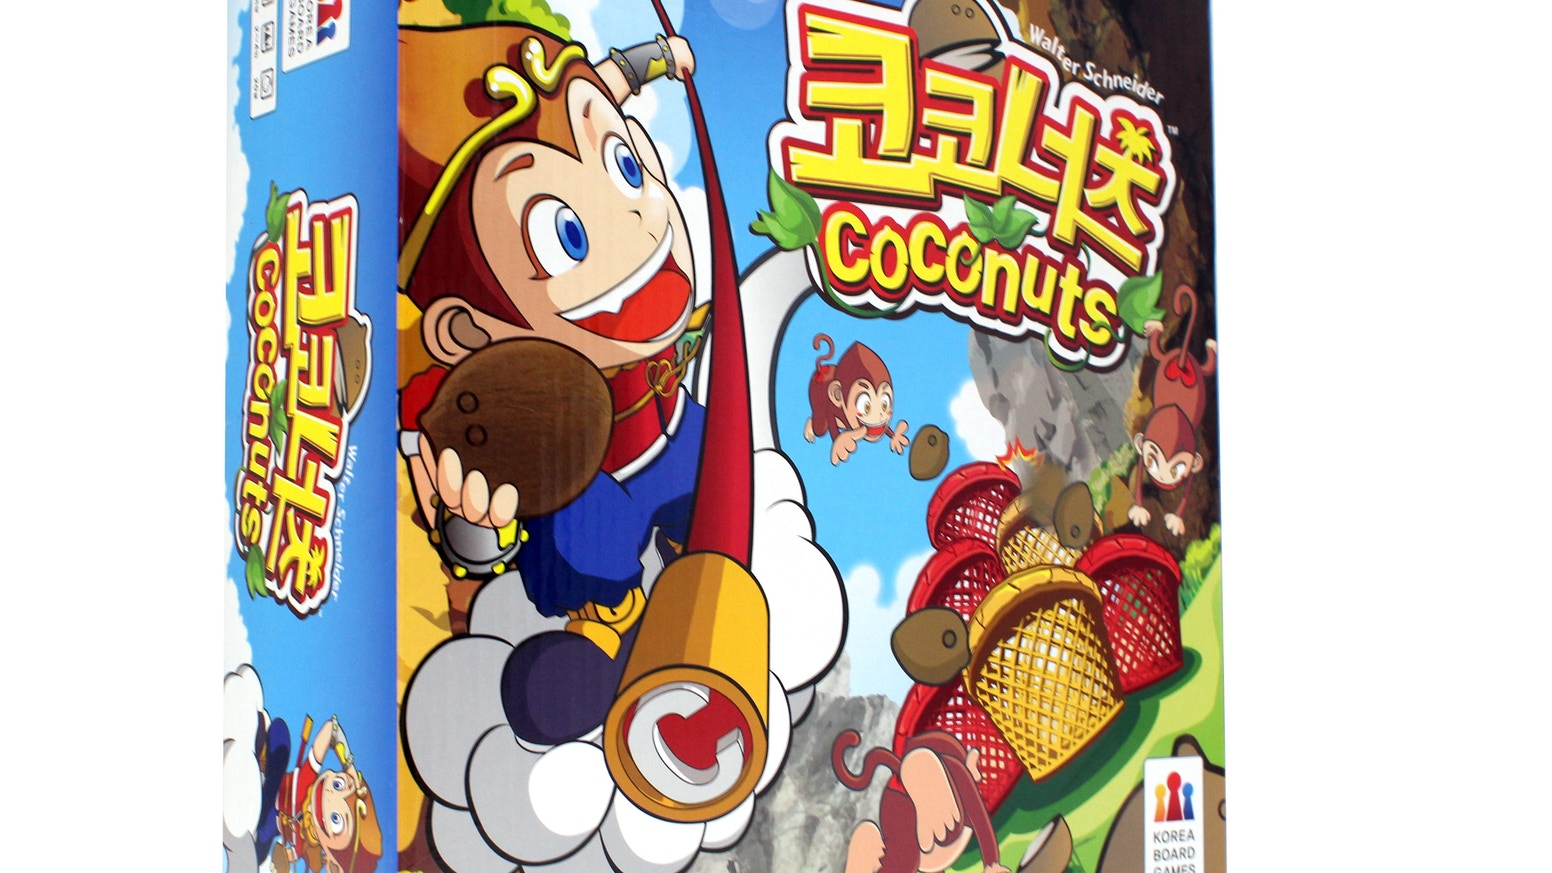 Coconuts is a dexterity game where each player assumes the role of a monkey tossing coconuts to be the top ape! Fun for everyone!